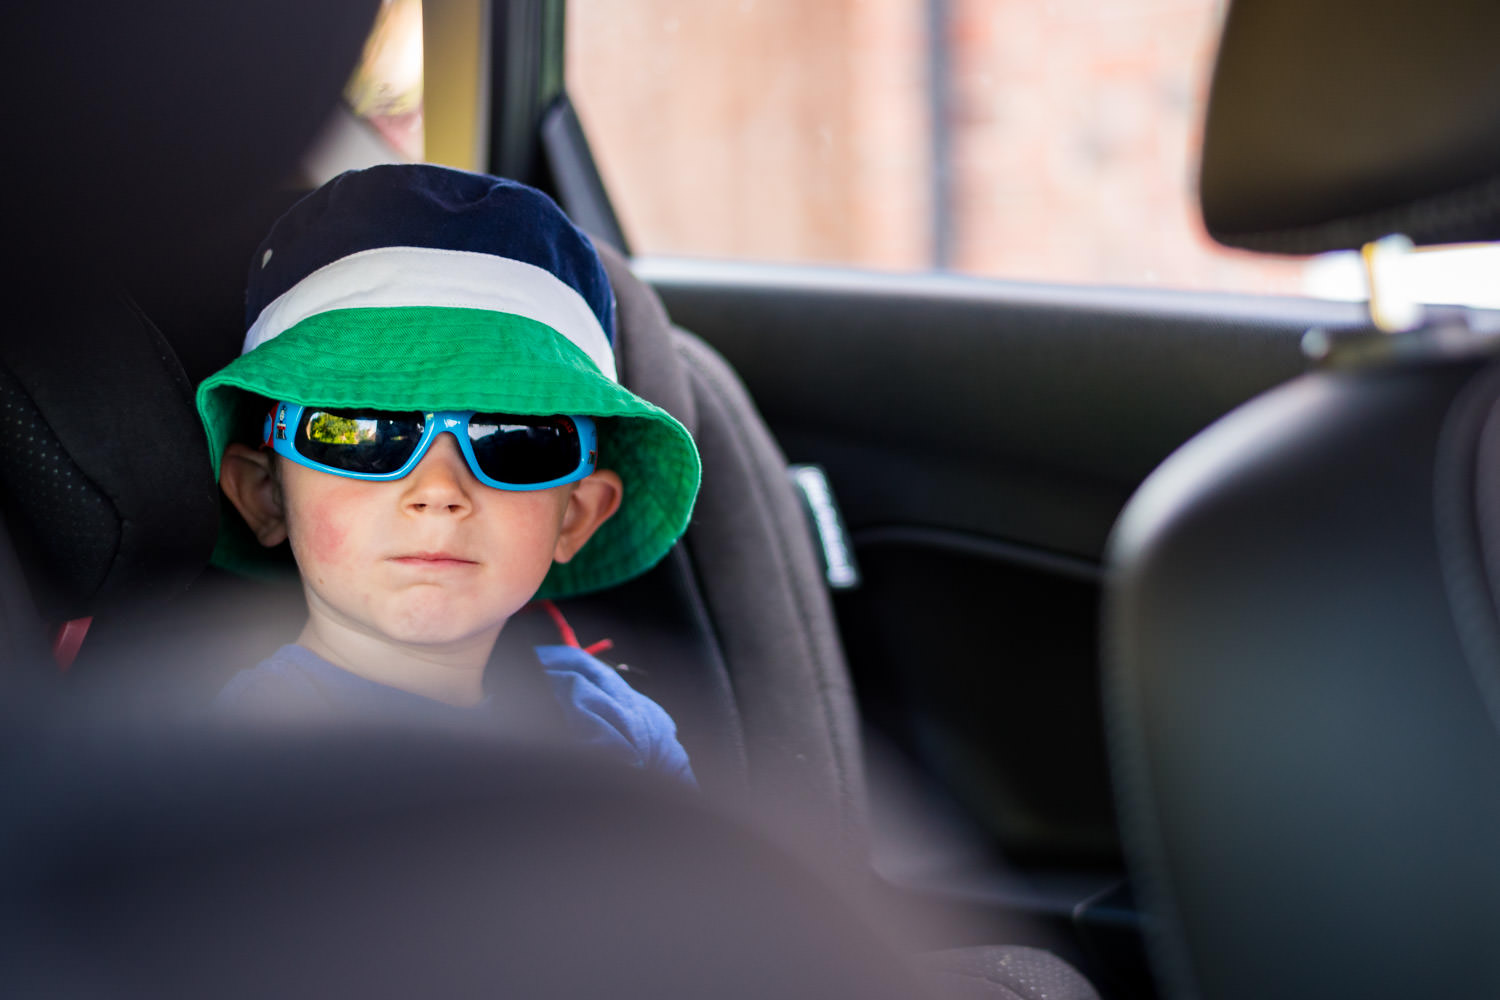 boy sat in car with sunglasses and hat